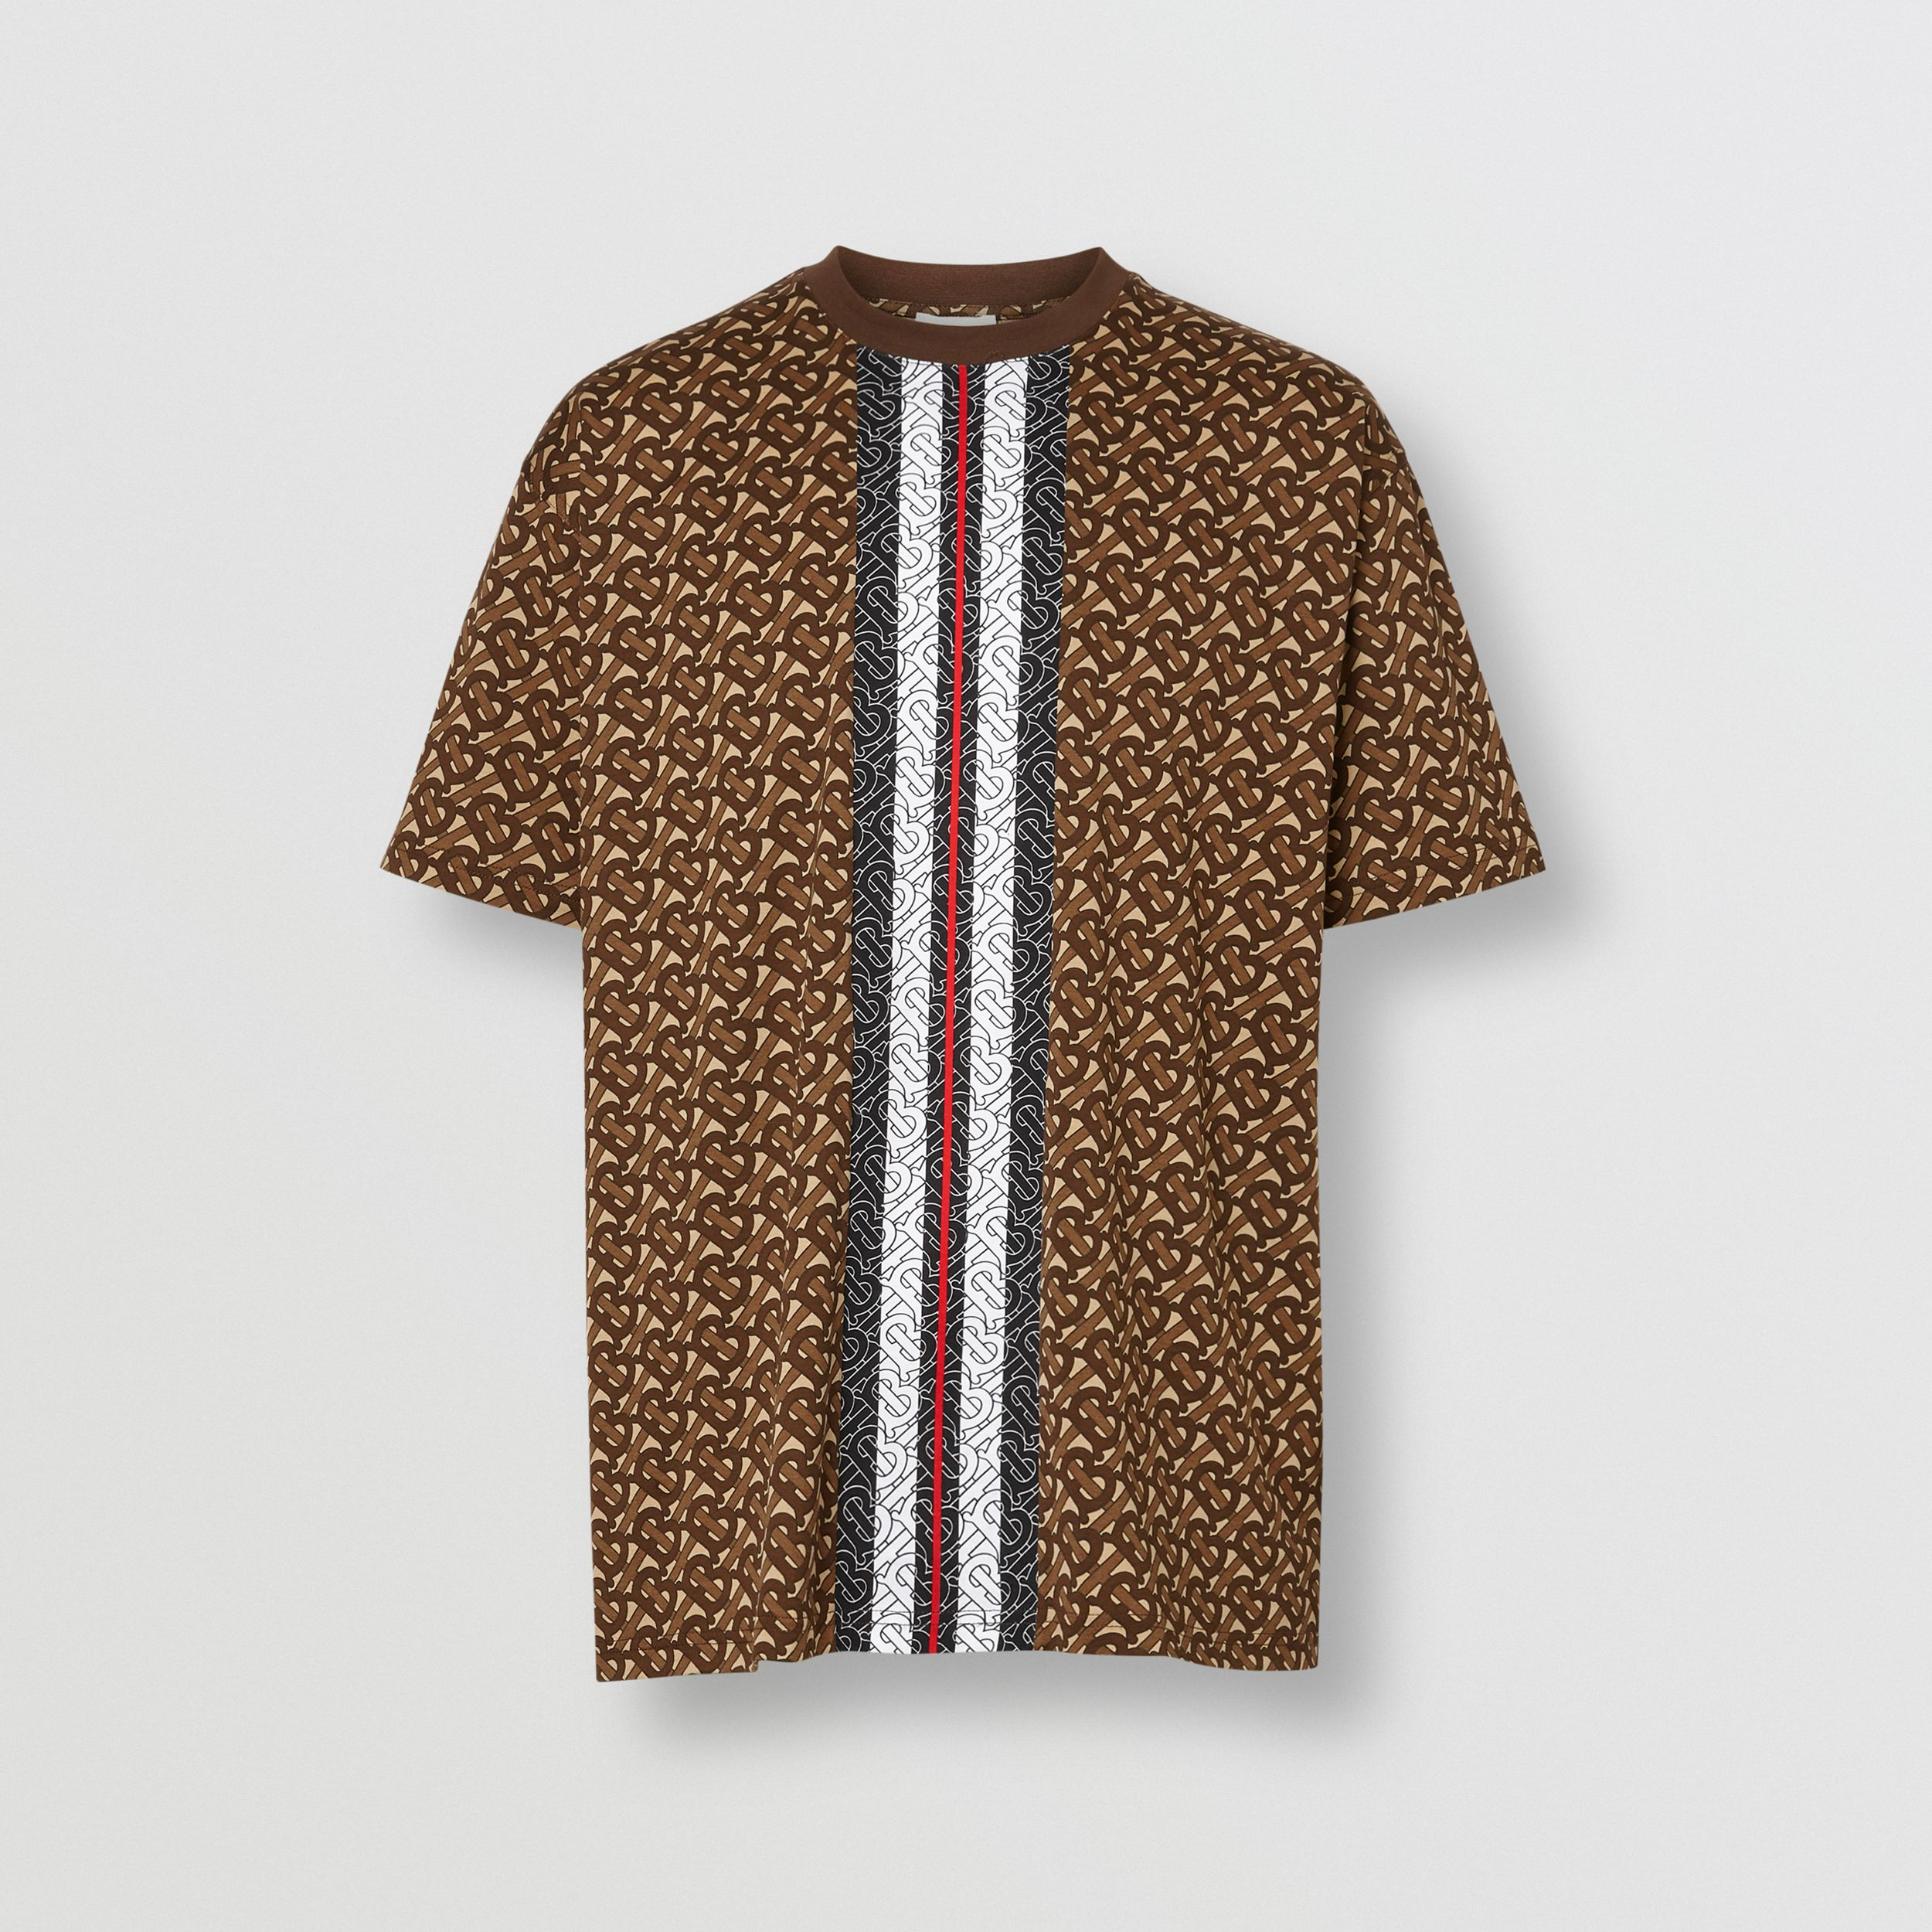 Monogram Stripe Print Cotton T-shirt in Bridle Brown - Men | Burberry - 4